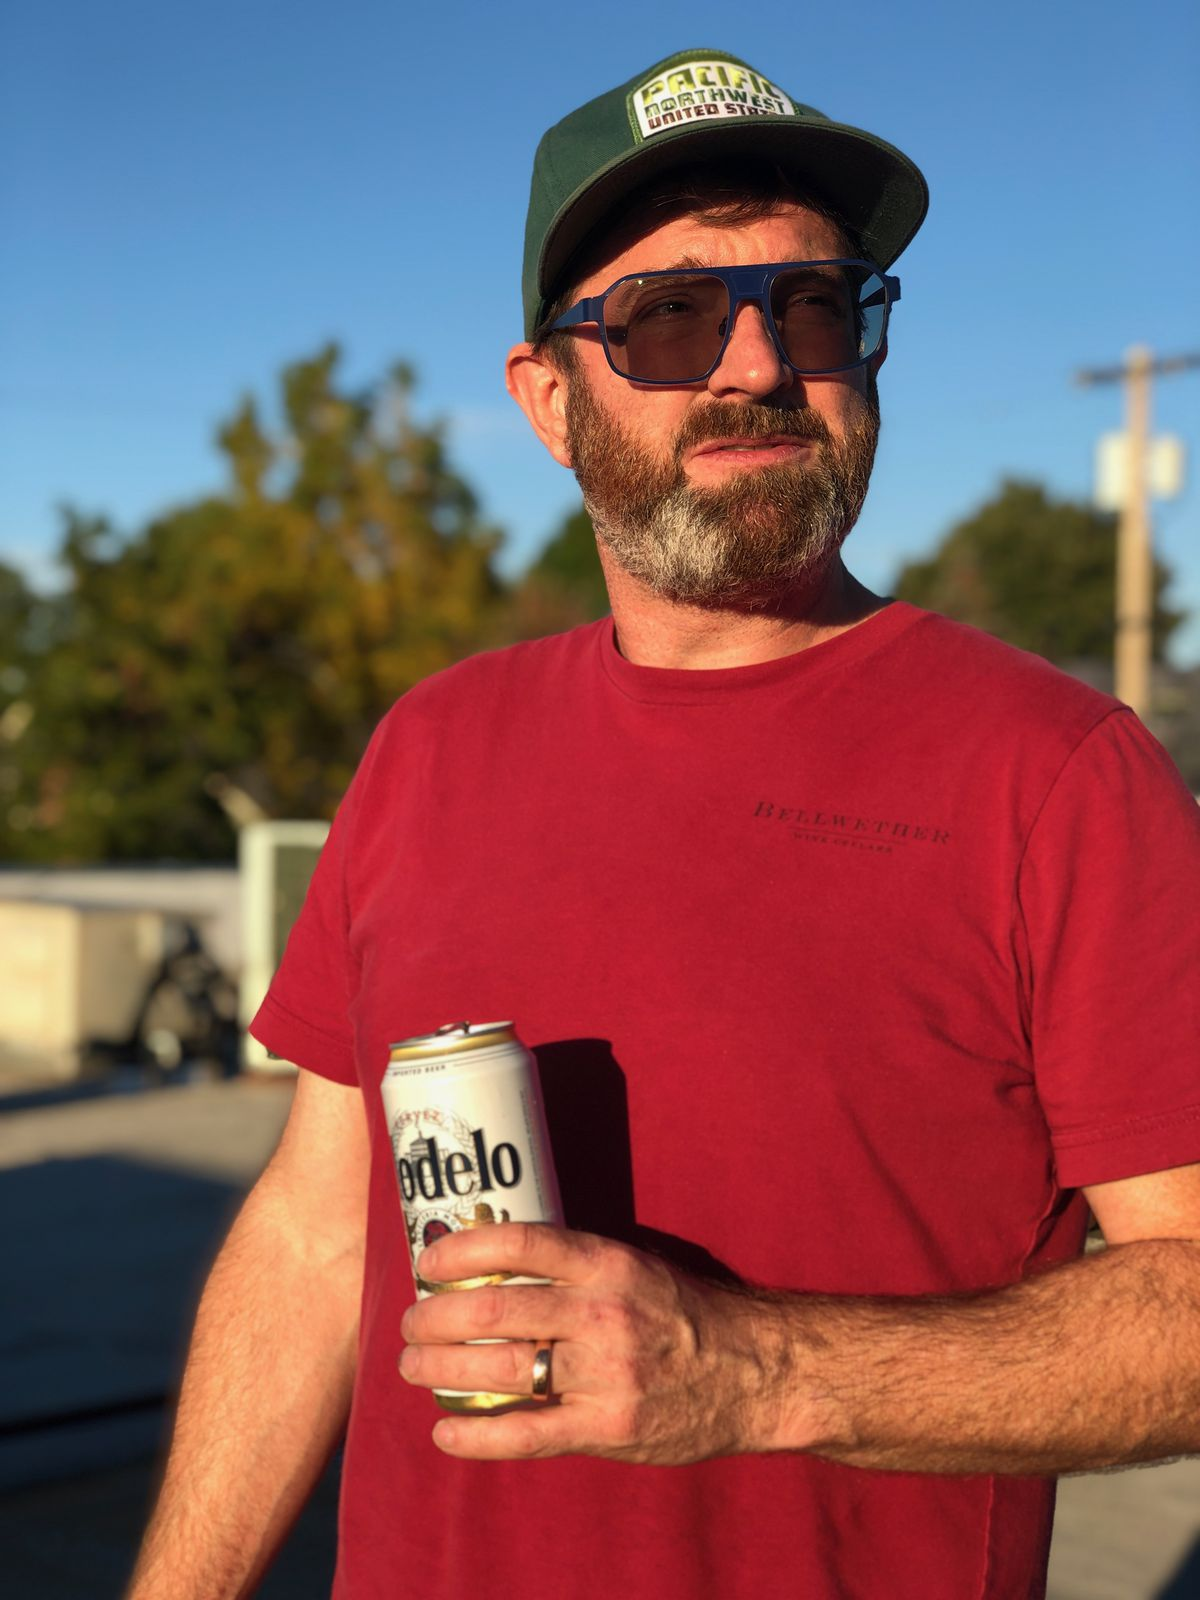 Bow & Arrow's Scott Frank, holding a can of Modelo, stands outside wearing a cap, a red t-shirt, and sunglasses.